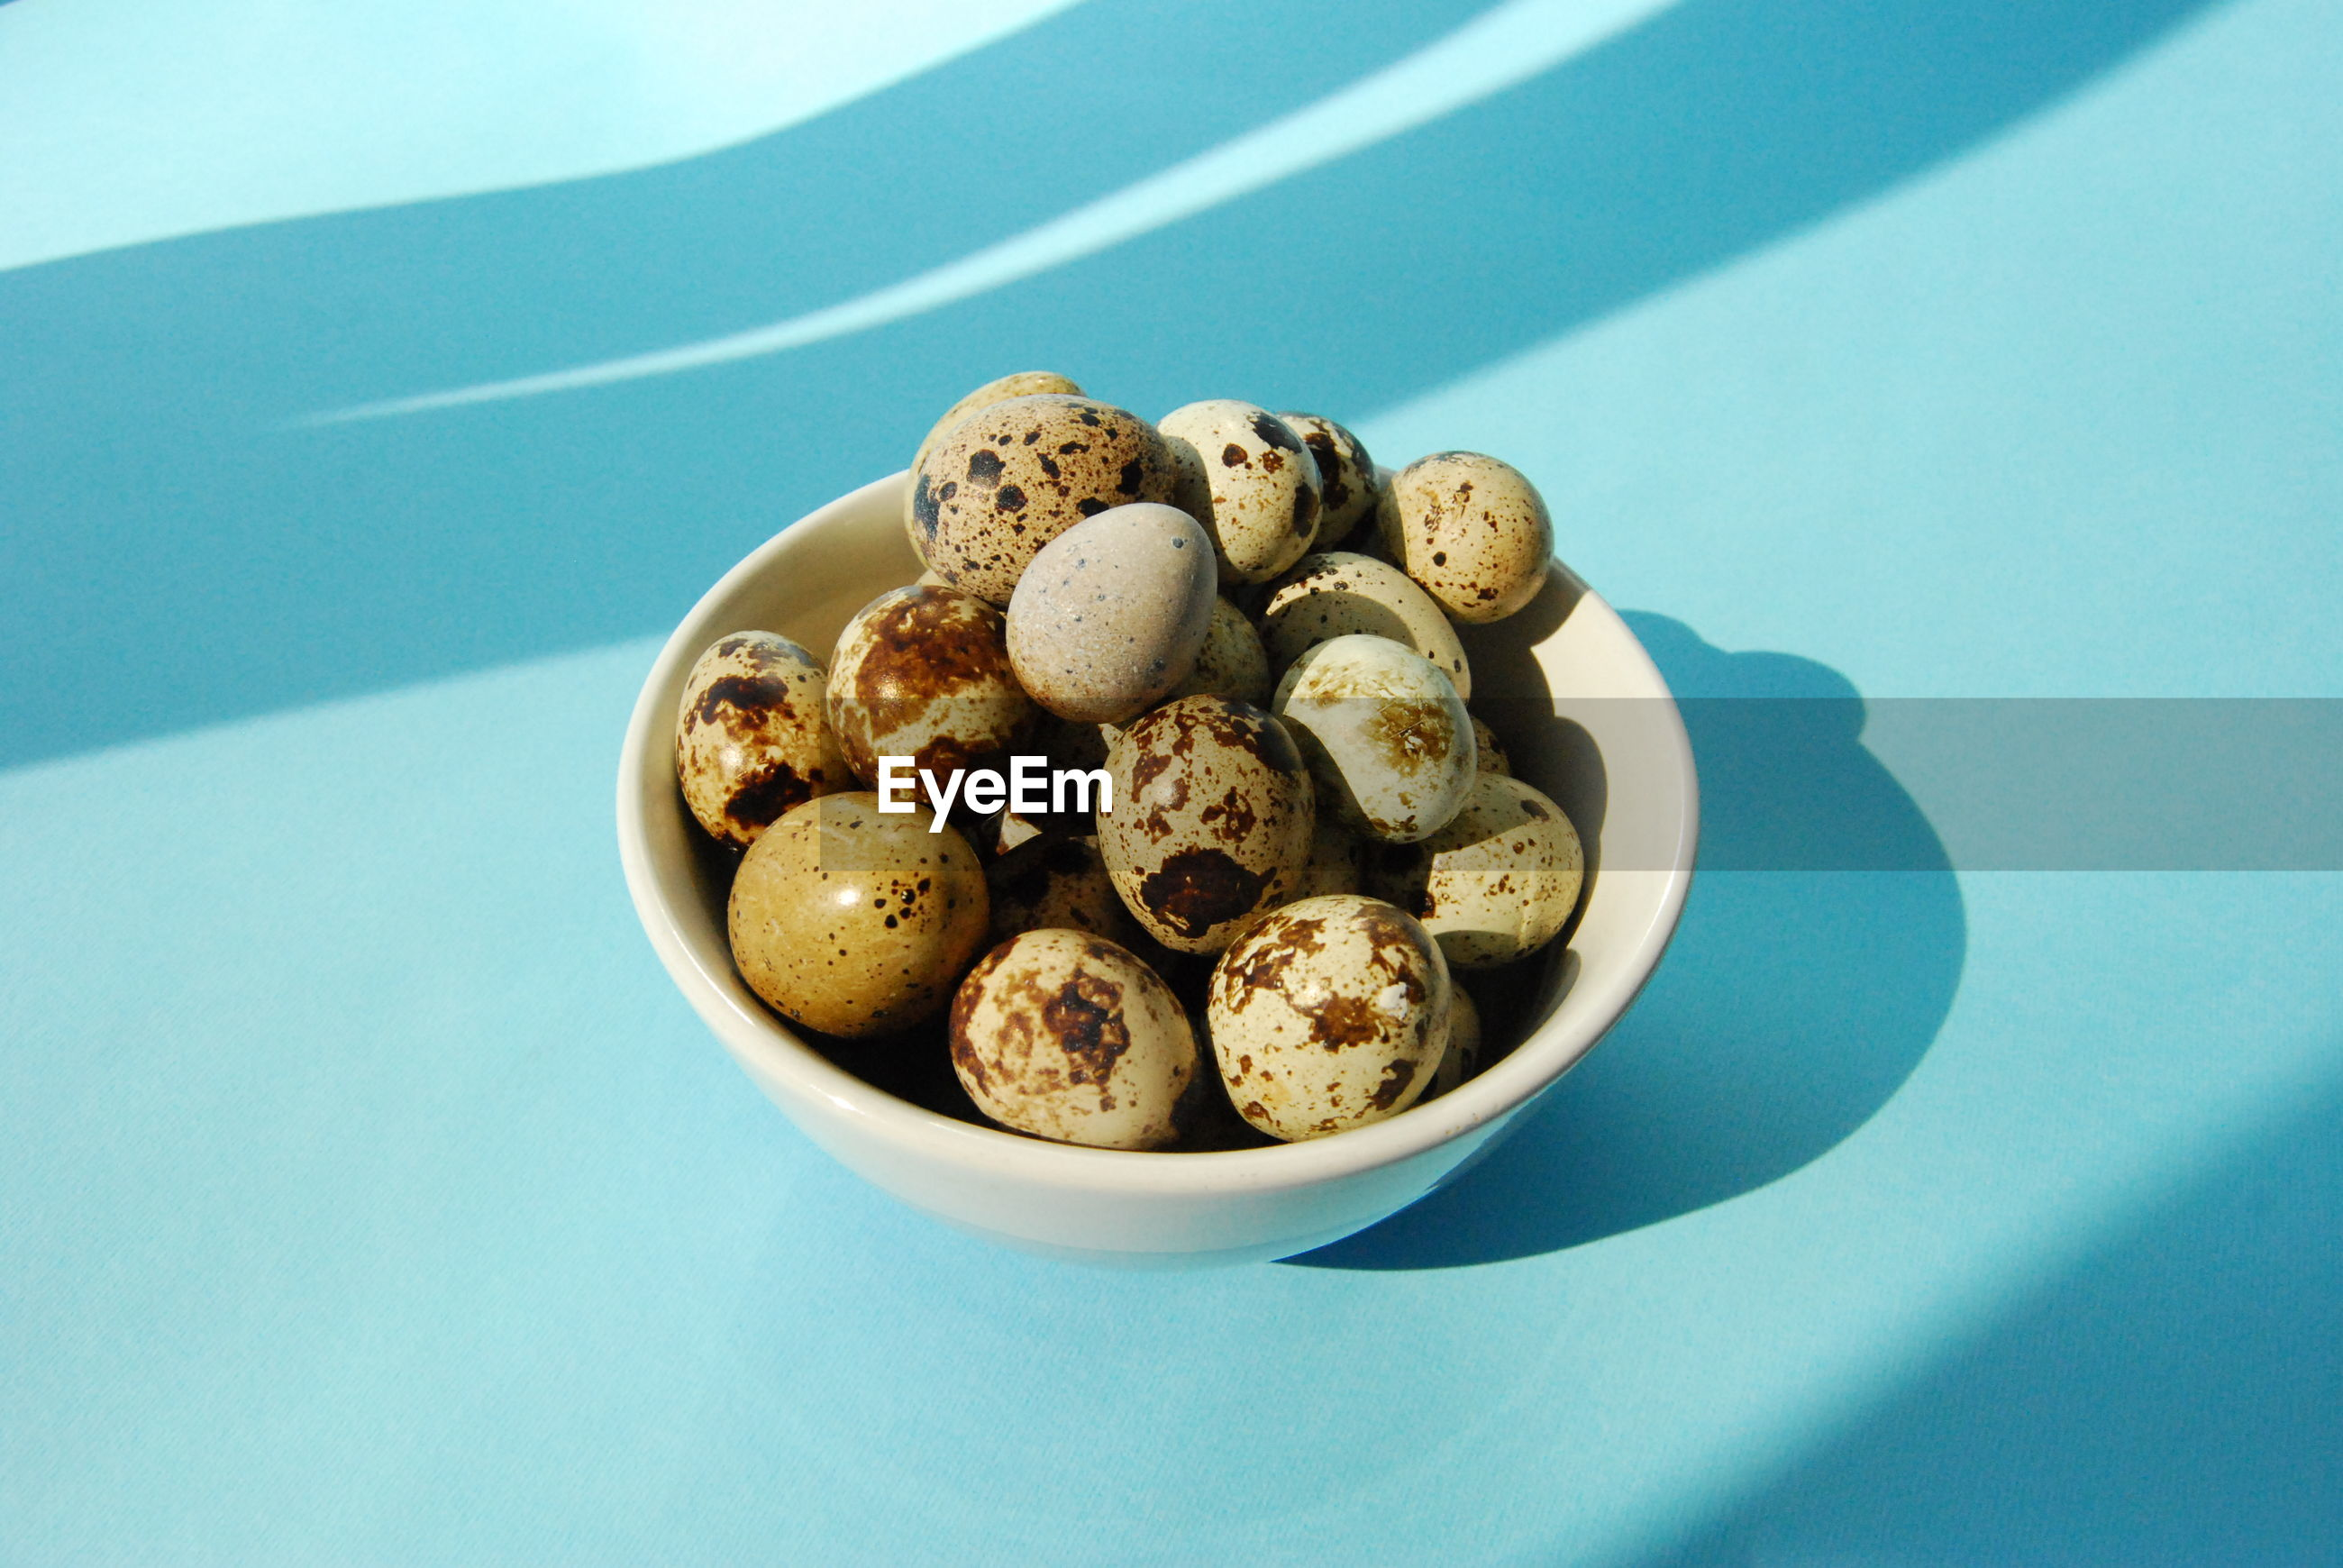 Eggs in bowl over blue background